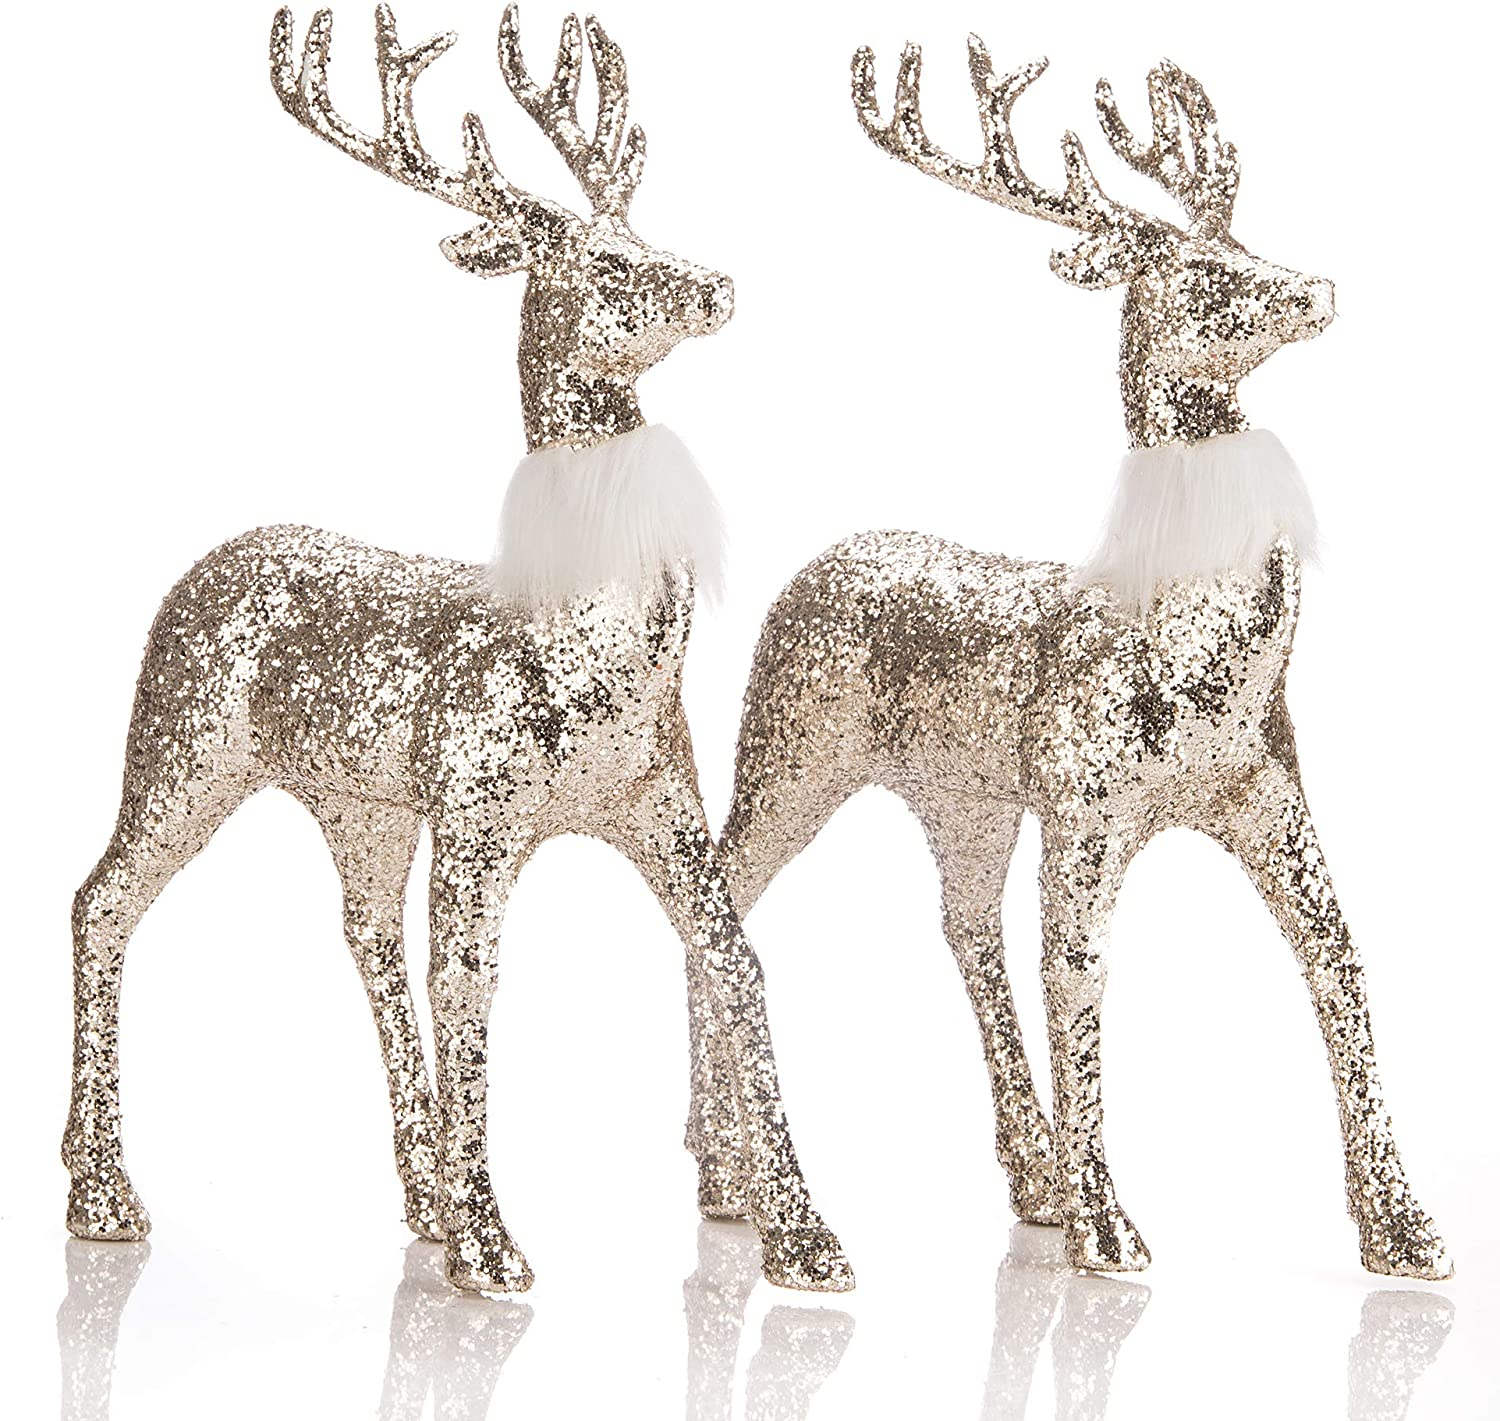 blitzlabs Christmas Reindeer Gold Glitter Deer Ornament Winter Decor ,Holiday Decorative Indoor Freestanding for Living Room, Tabletop, Kitchen ,Mantle, Shelf ,Desk ,Office& More,Set of 2